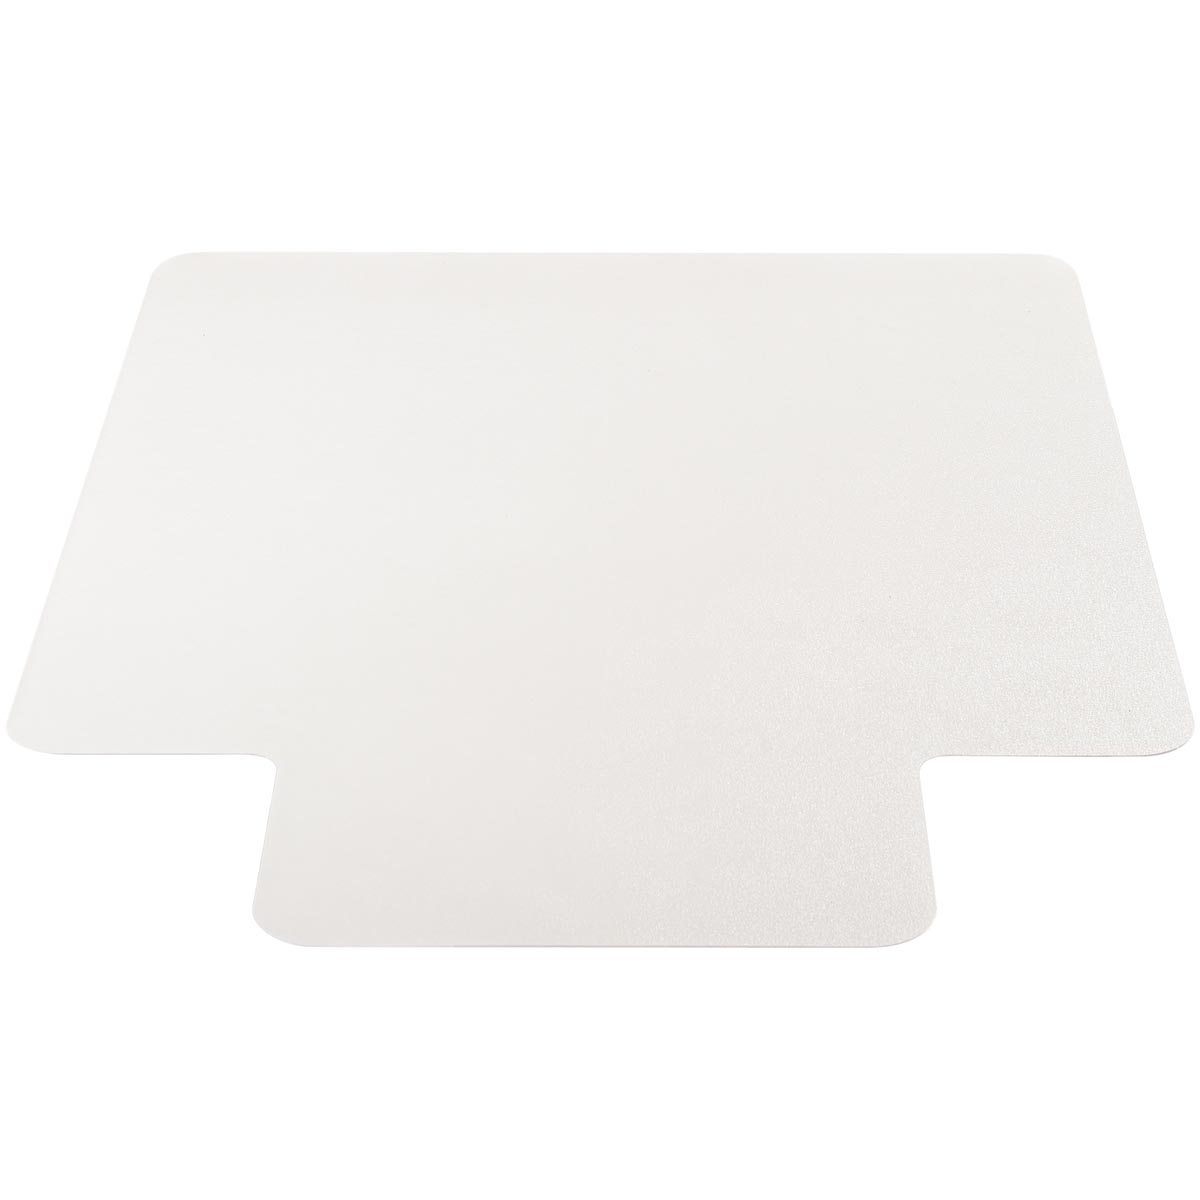 office chair mat 45 x 53 christopher knight home walter recliner club economat w lip for hard floor quotw quotl